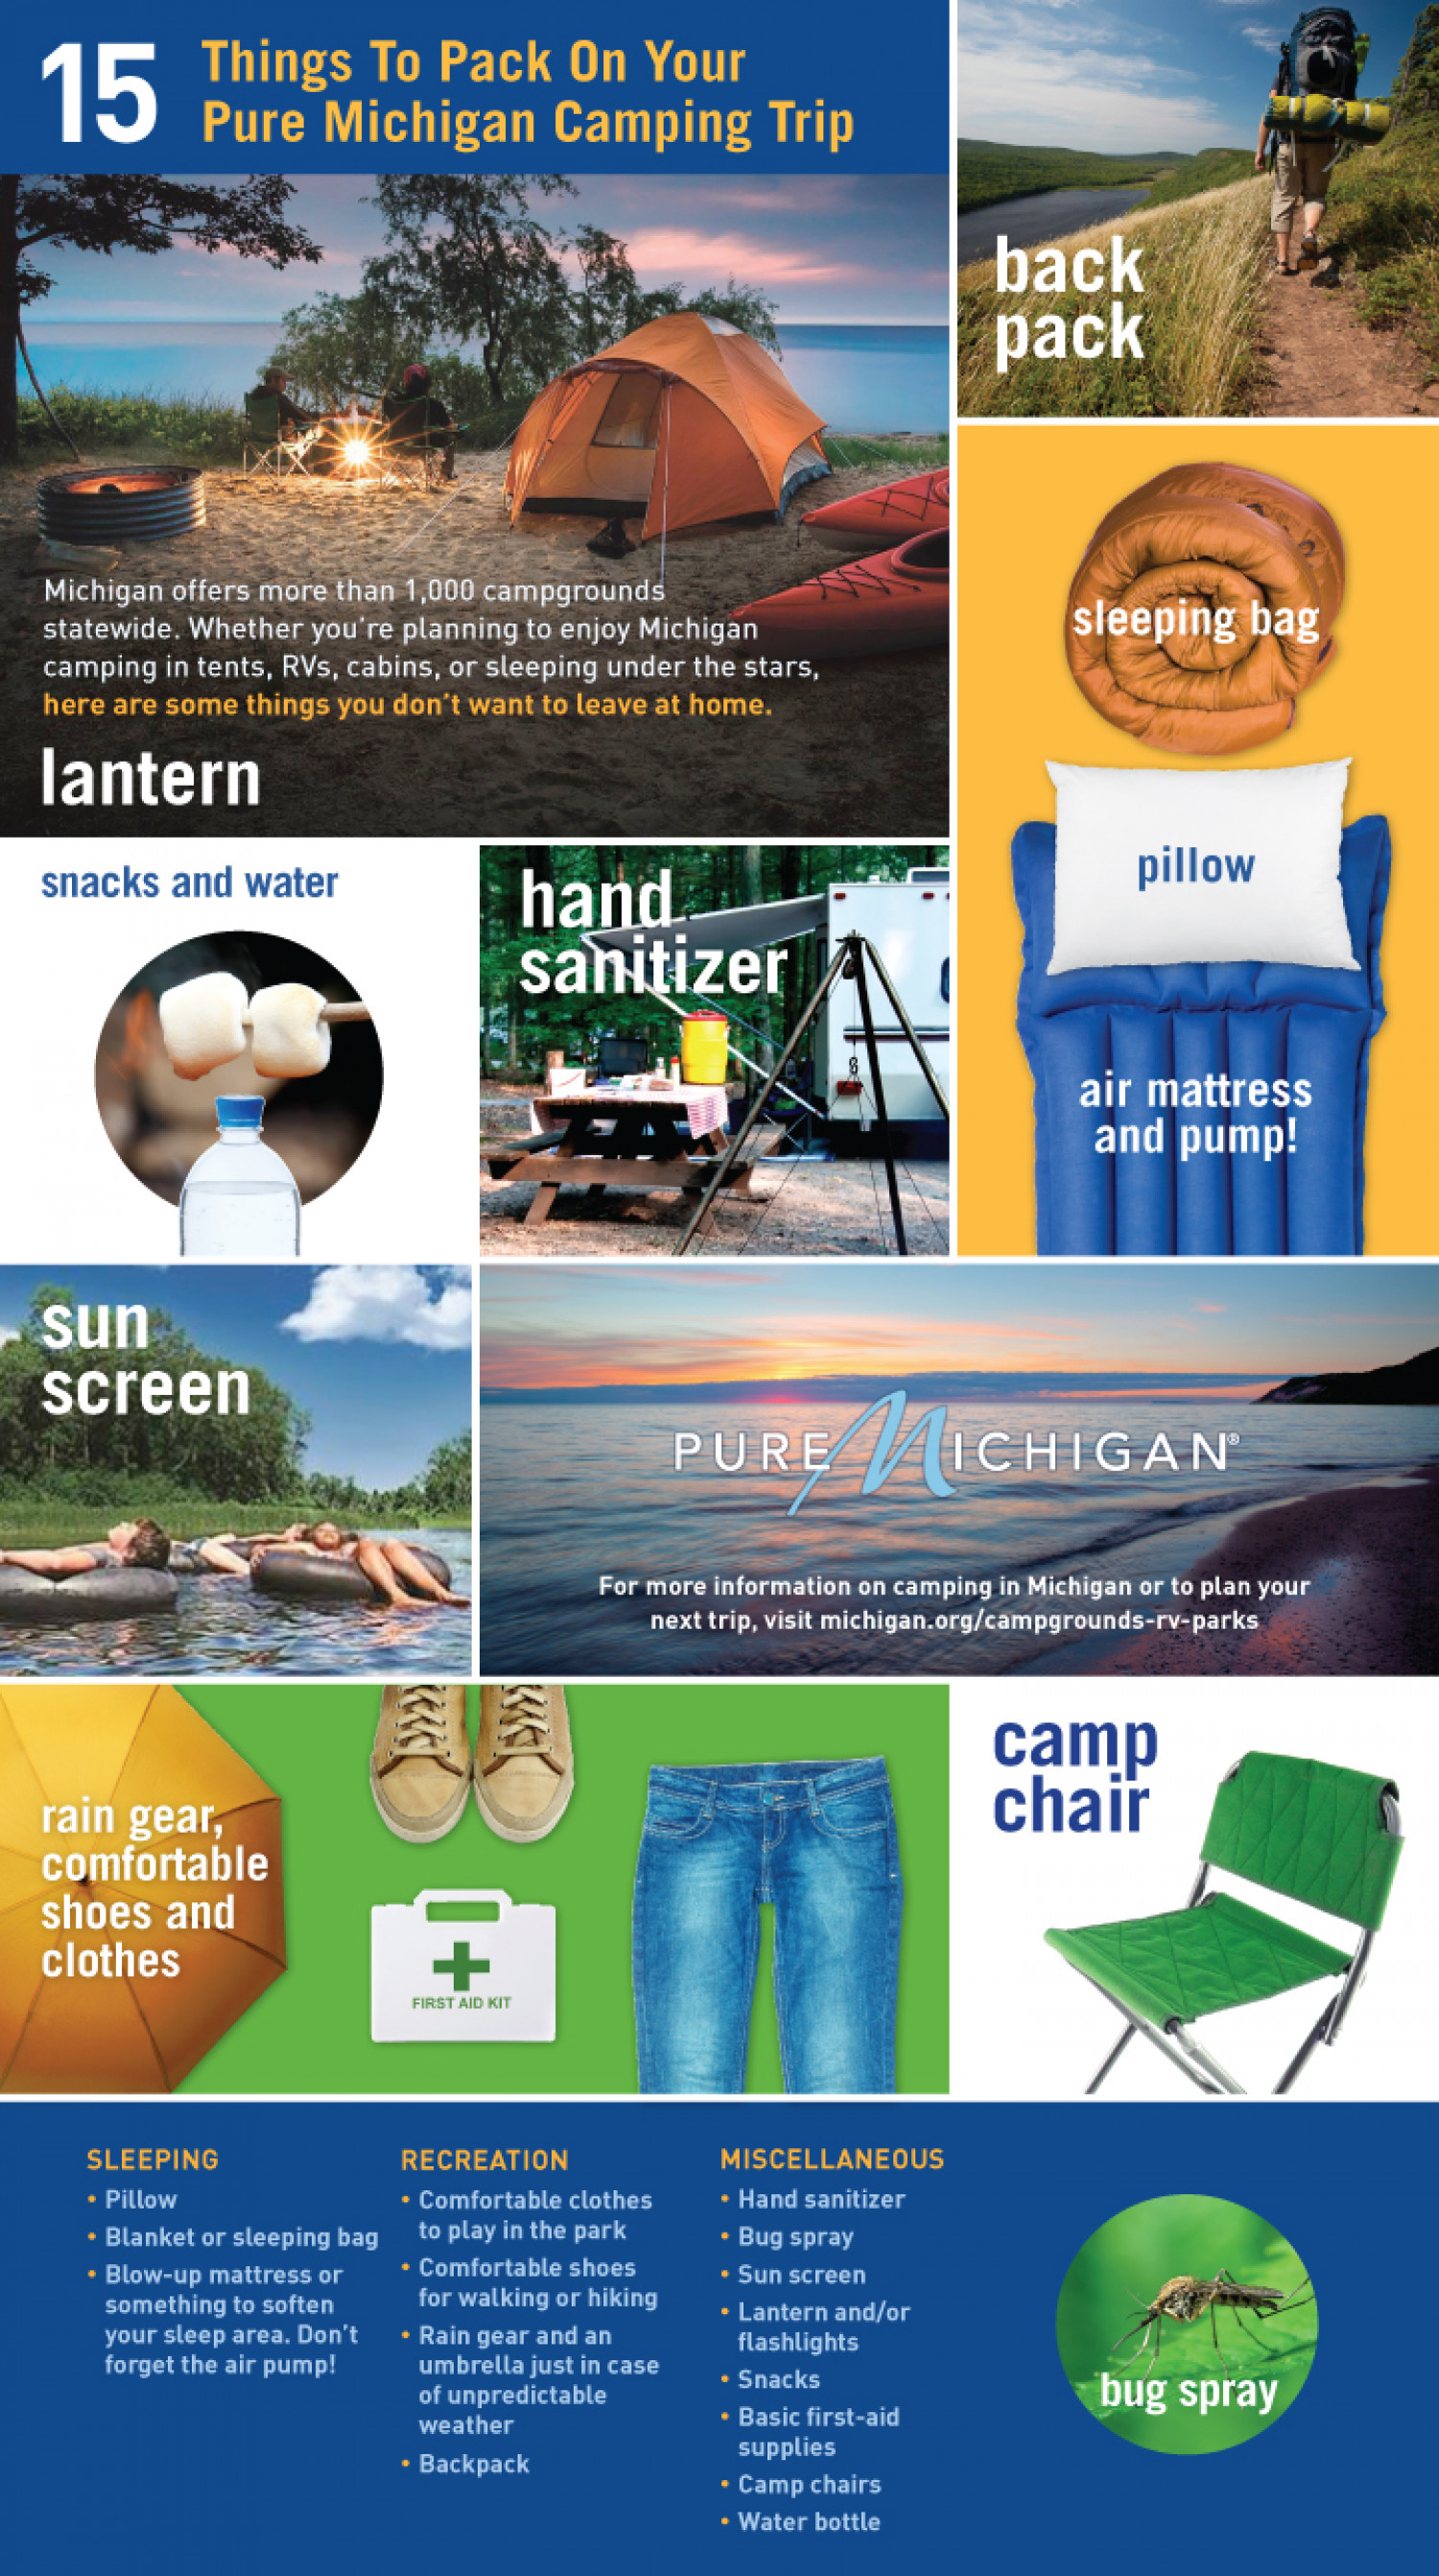 15 Things To Pack On Your Pure Michigan Camping Trip Infographic